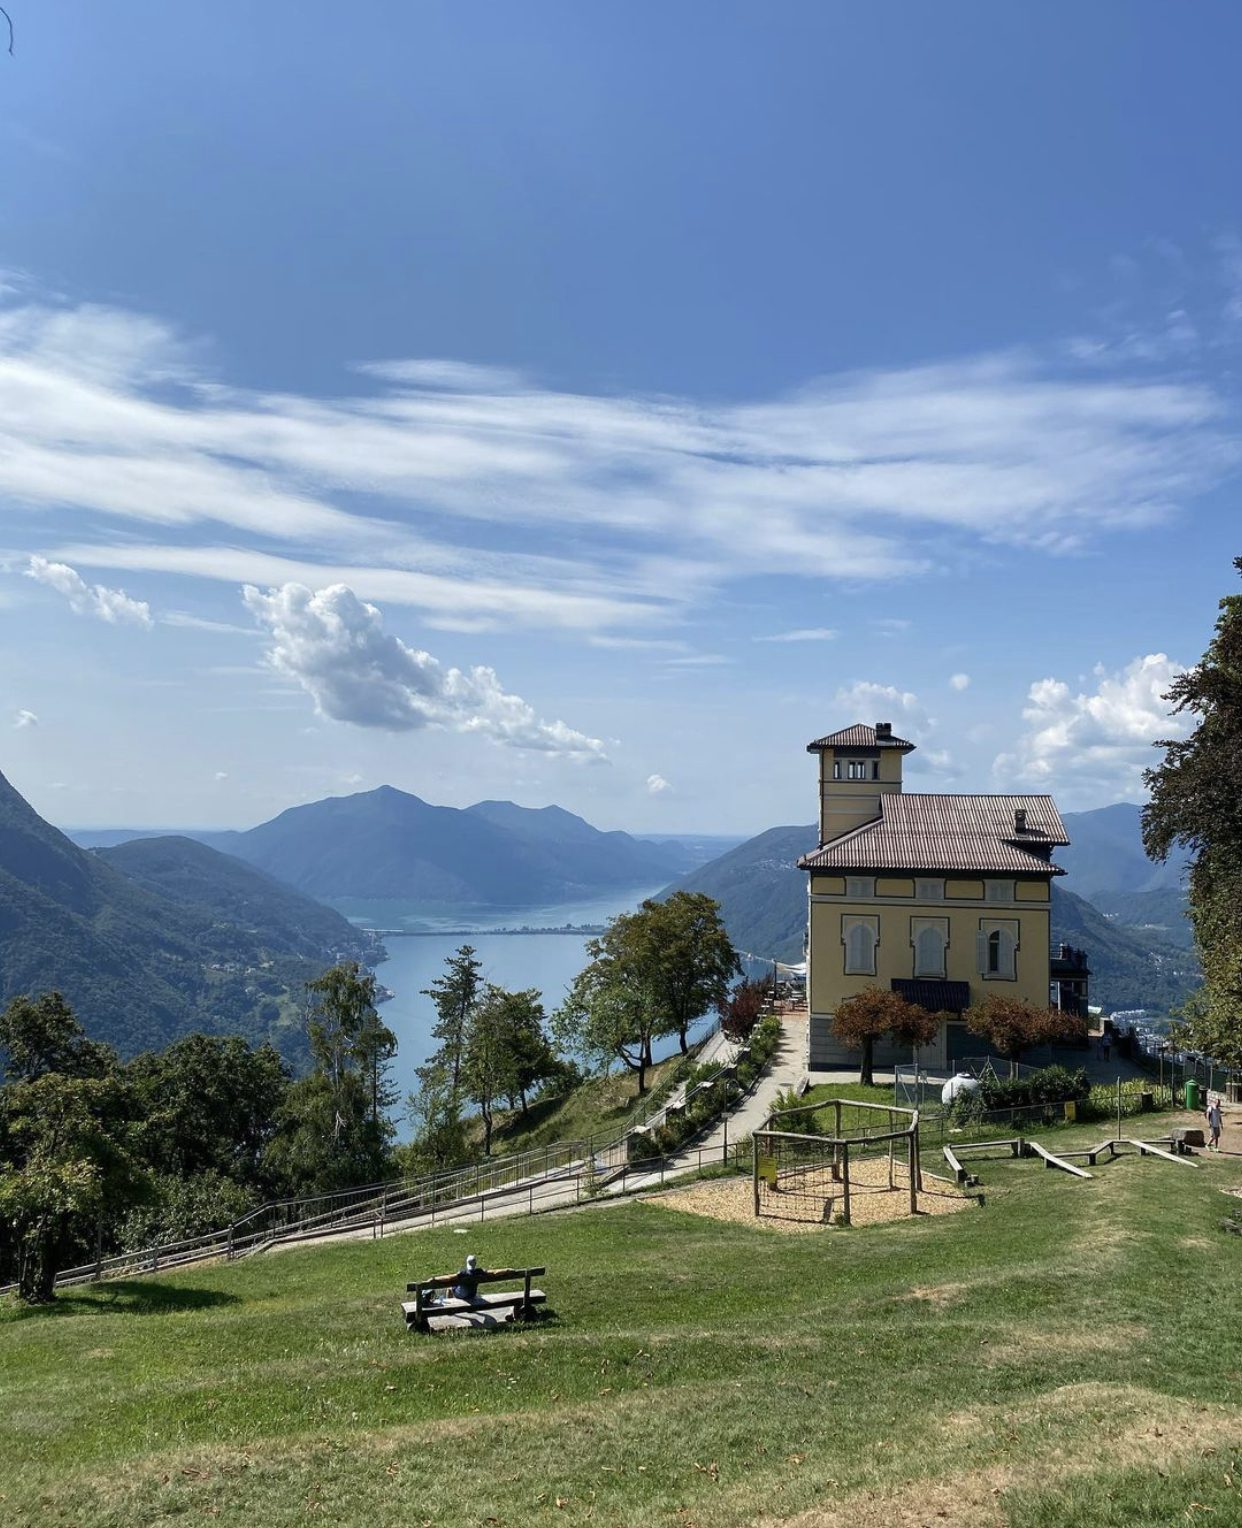 One day in Lugano